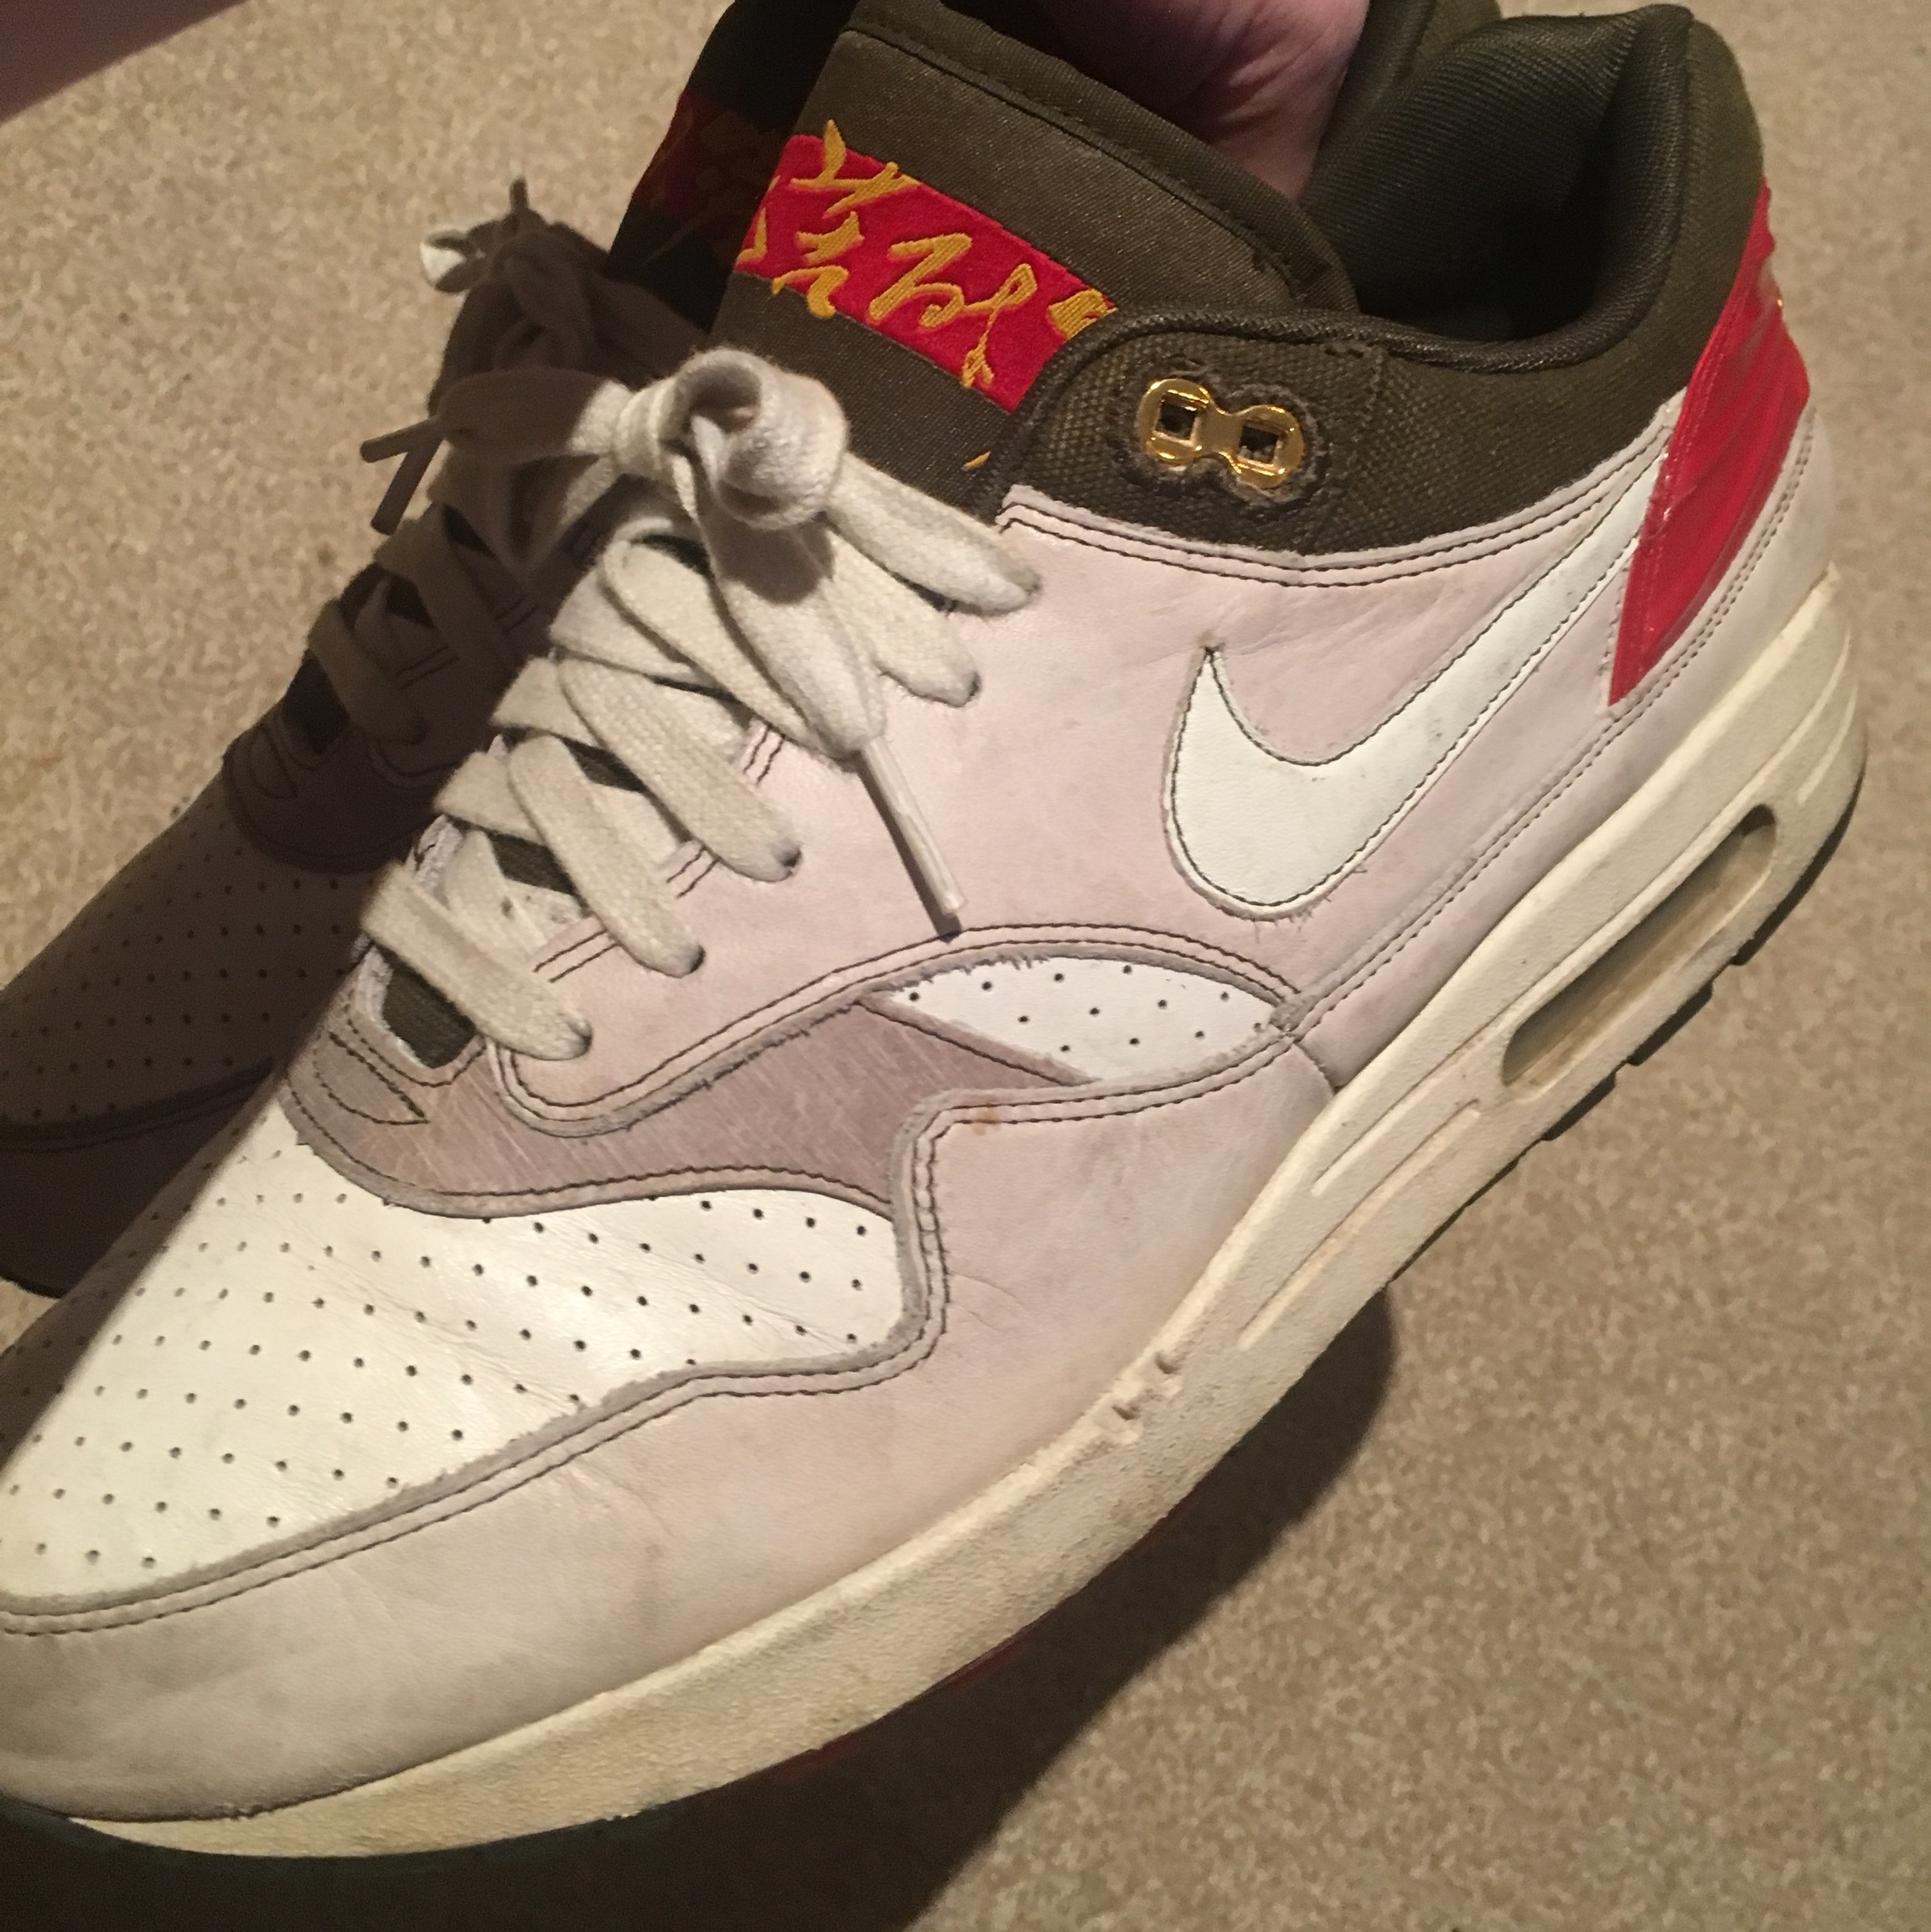 Nike Air Max 1 'Year of the Ox' from 2008 Depop